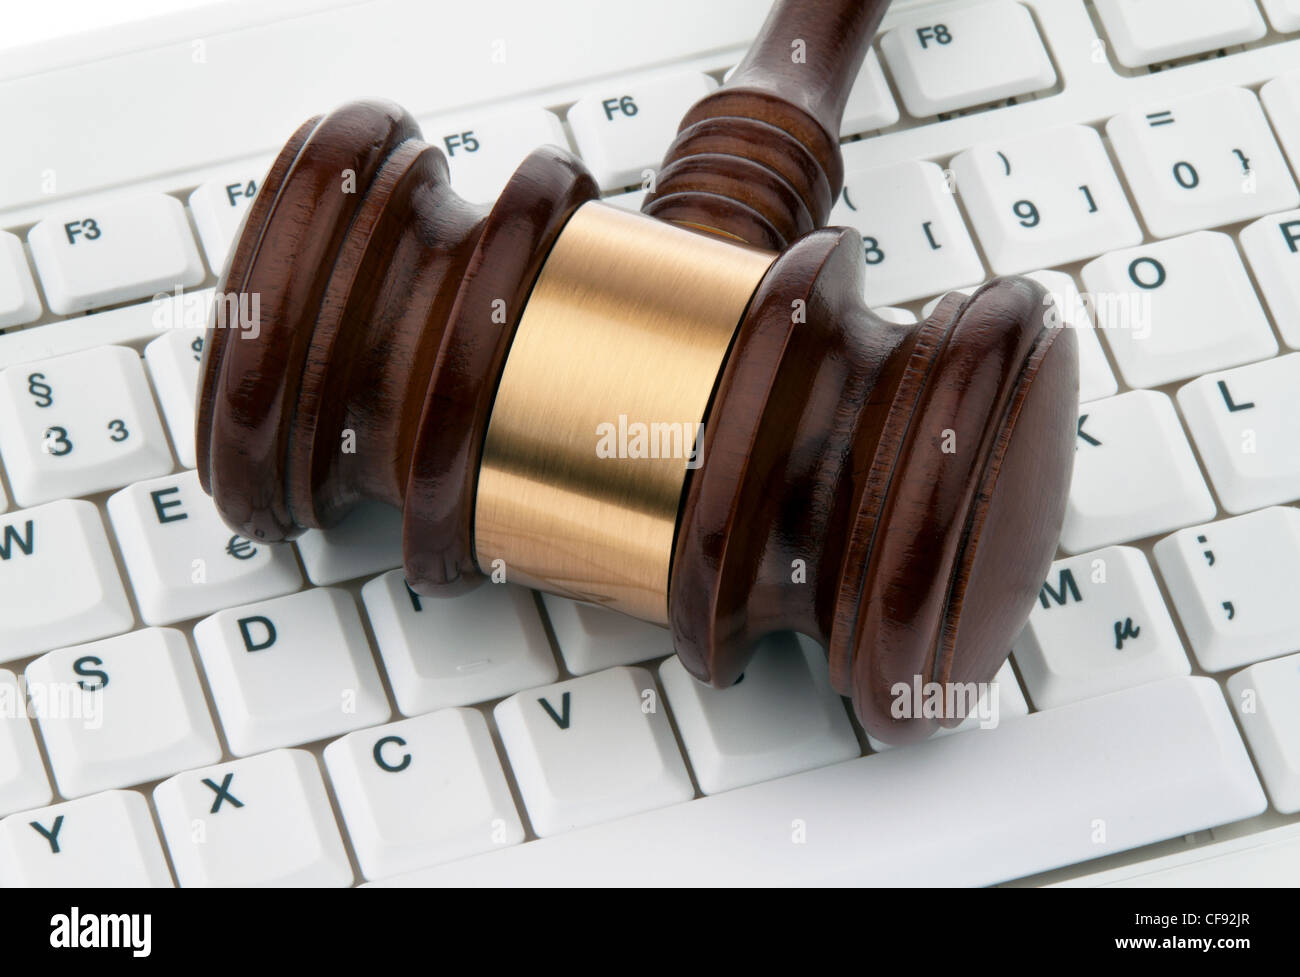 gavel and keyboard. legal certainty on the internet. webauktionen. - Stock Image